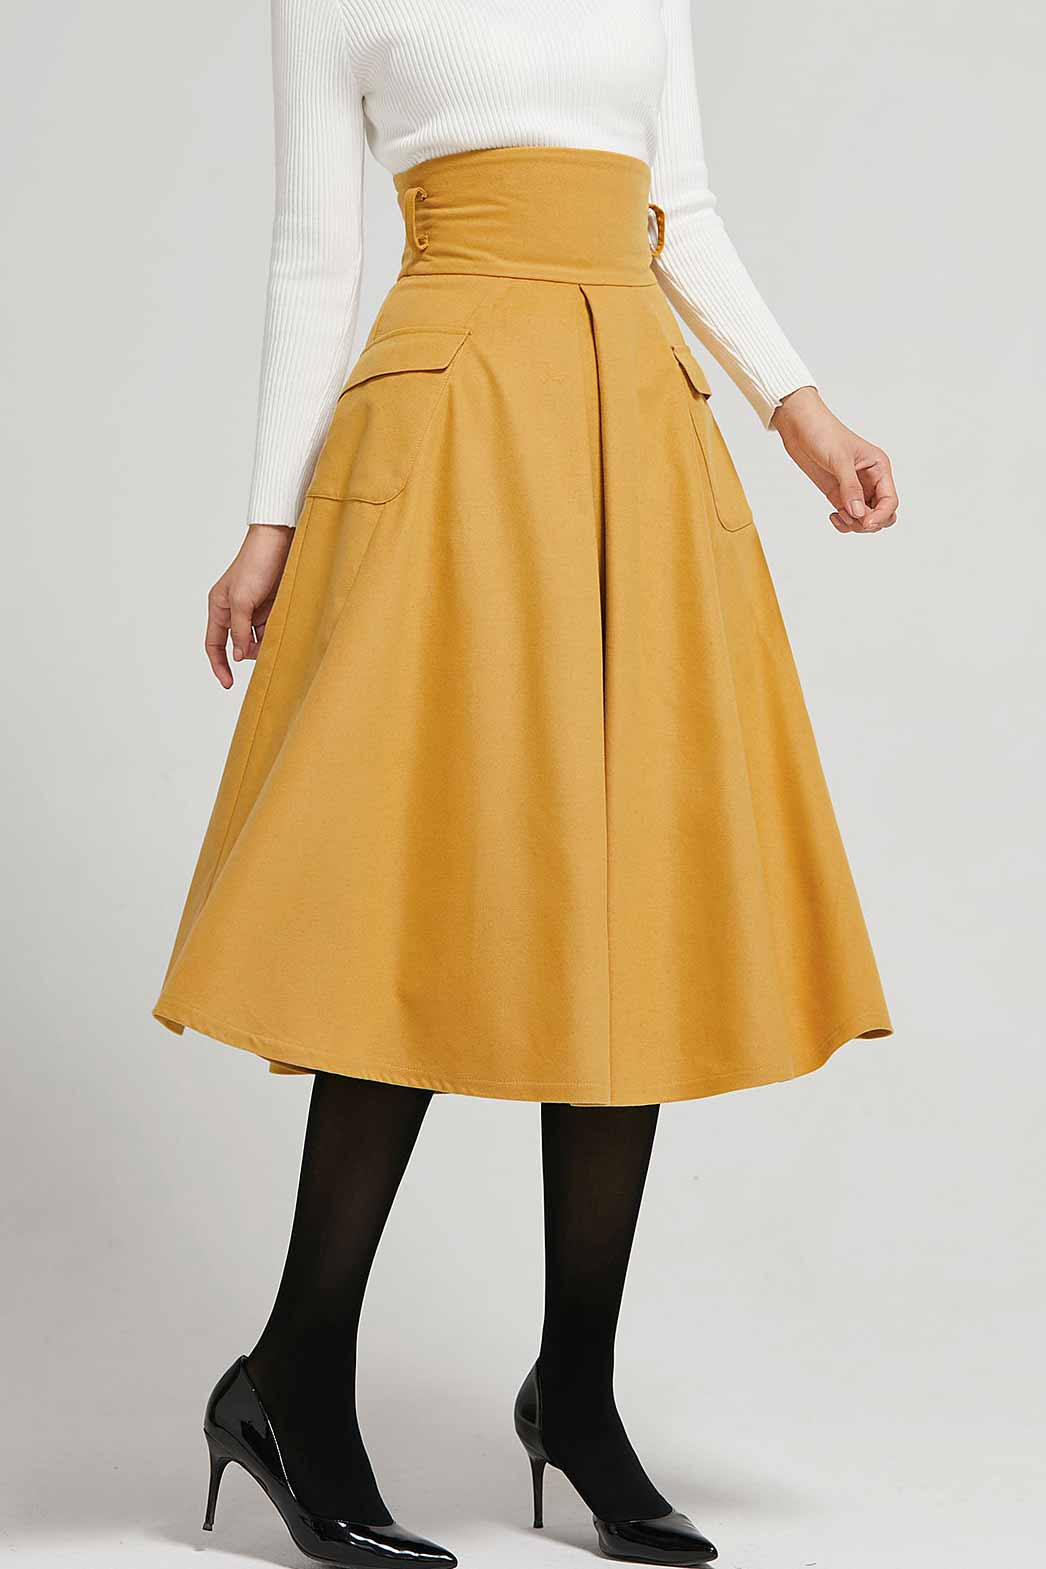 High waist A line skirt for winter 2302#